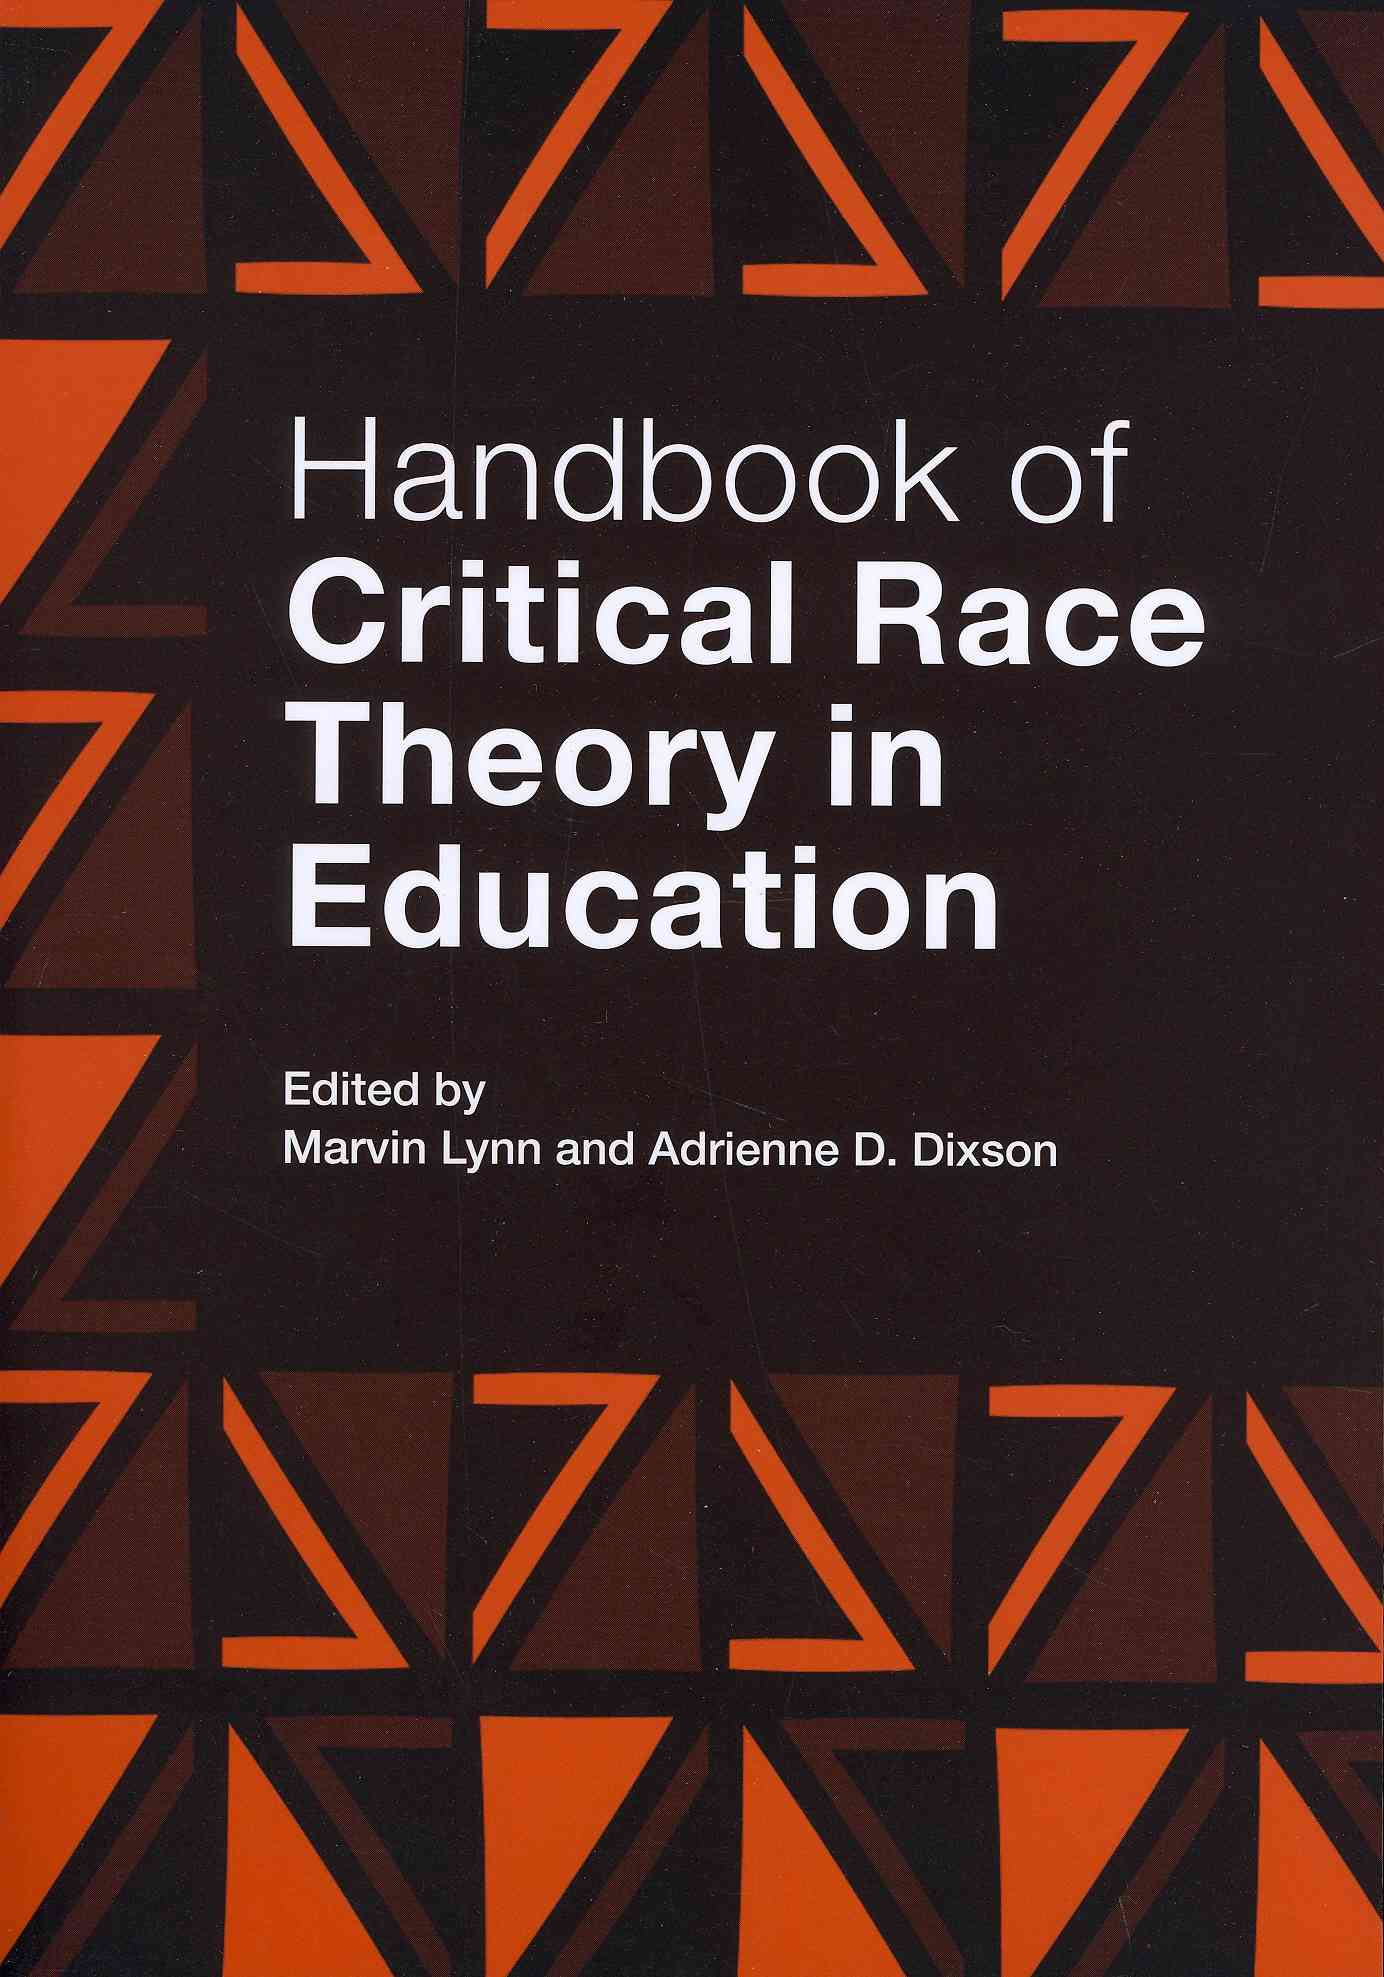 Handbook of Critical Race Theory in Education By Lynn, Marvin (EDT)/ Dixson, Adrienne D. (EDT)